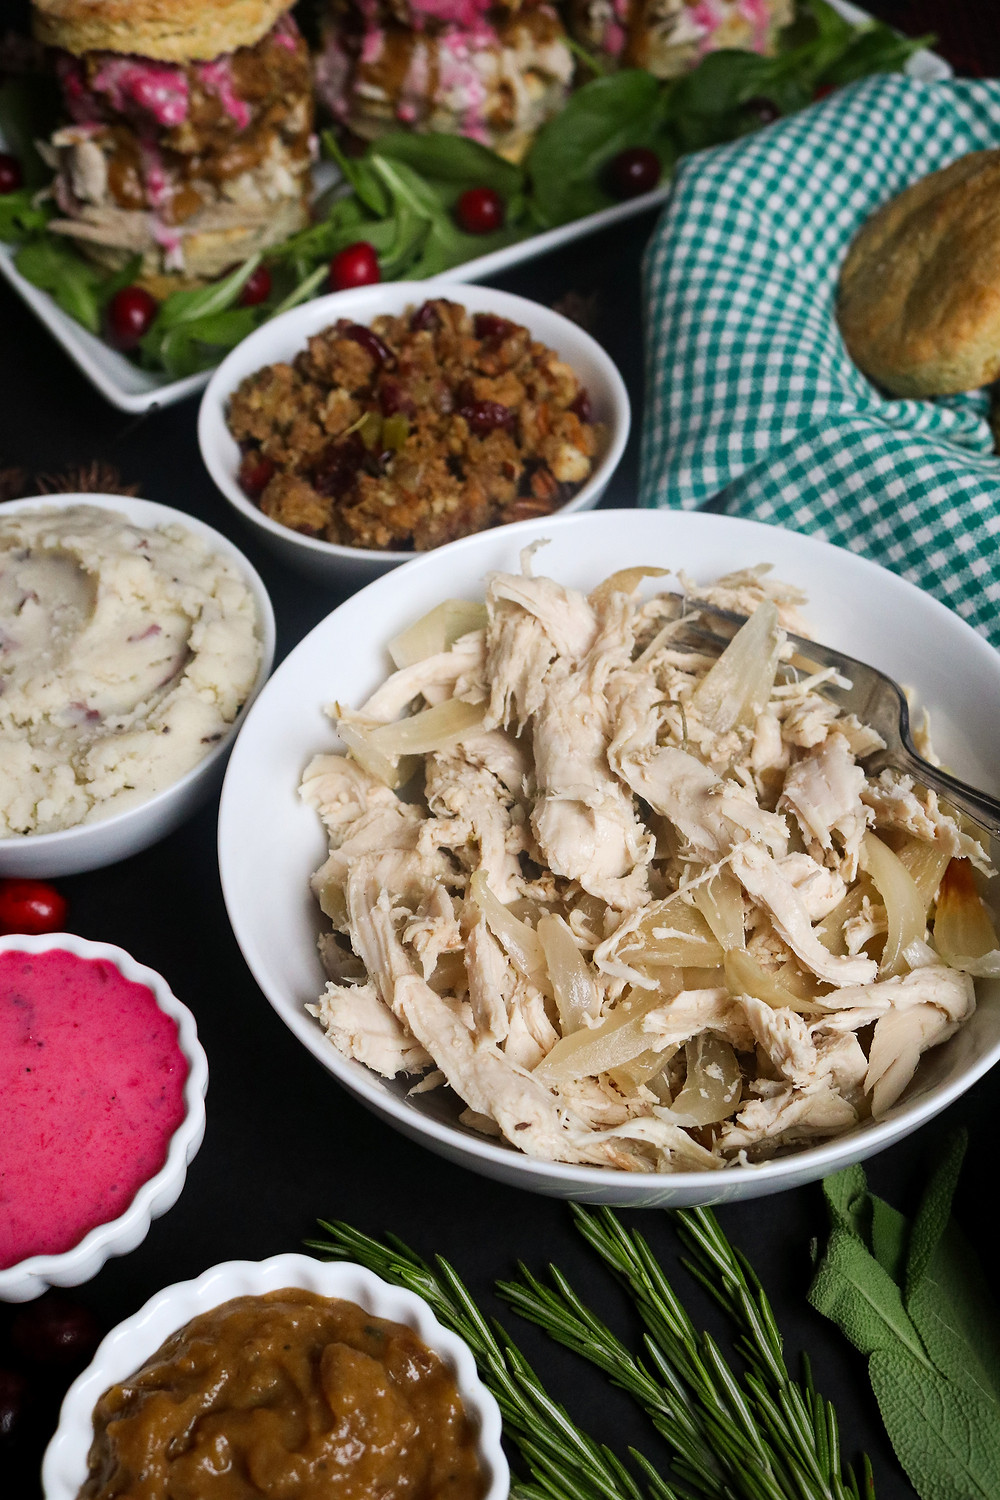 Rosemary and Sage Slow-Cooker Pulled Turkey for Gobbler Bomb